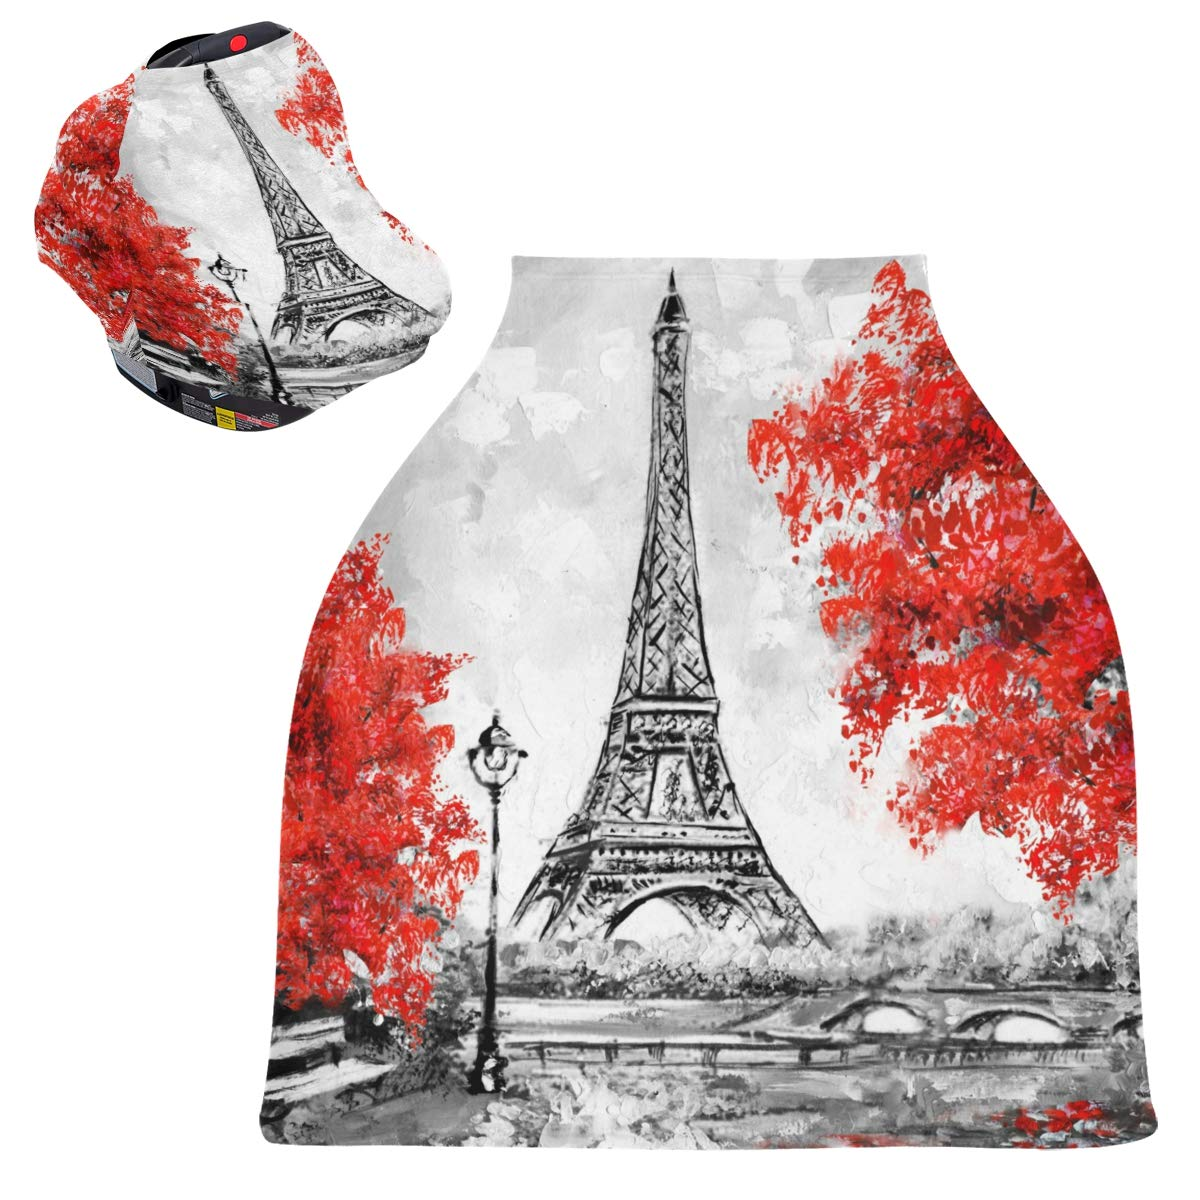 Stretchy Baby Car Seat Canopy - Paris European Eiffel Tower Infant Stroller Cover Multi Use Carseat Canopy Nursing Cover for Girl